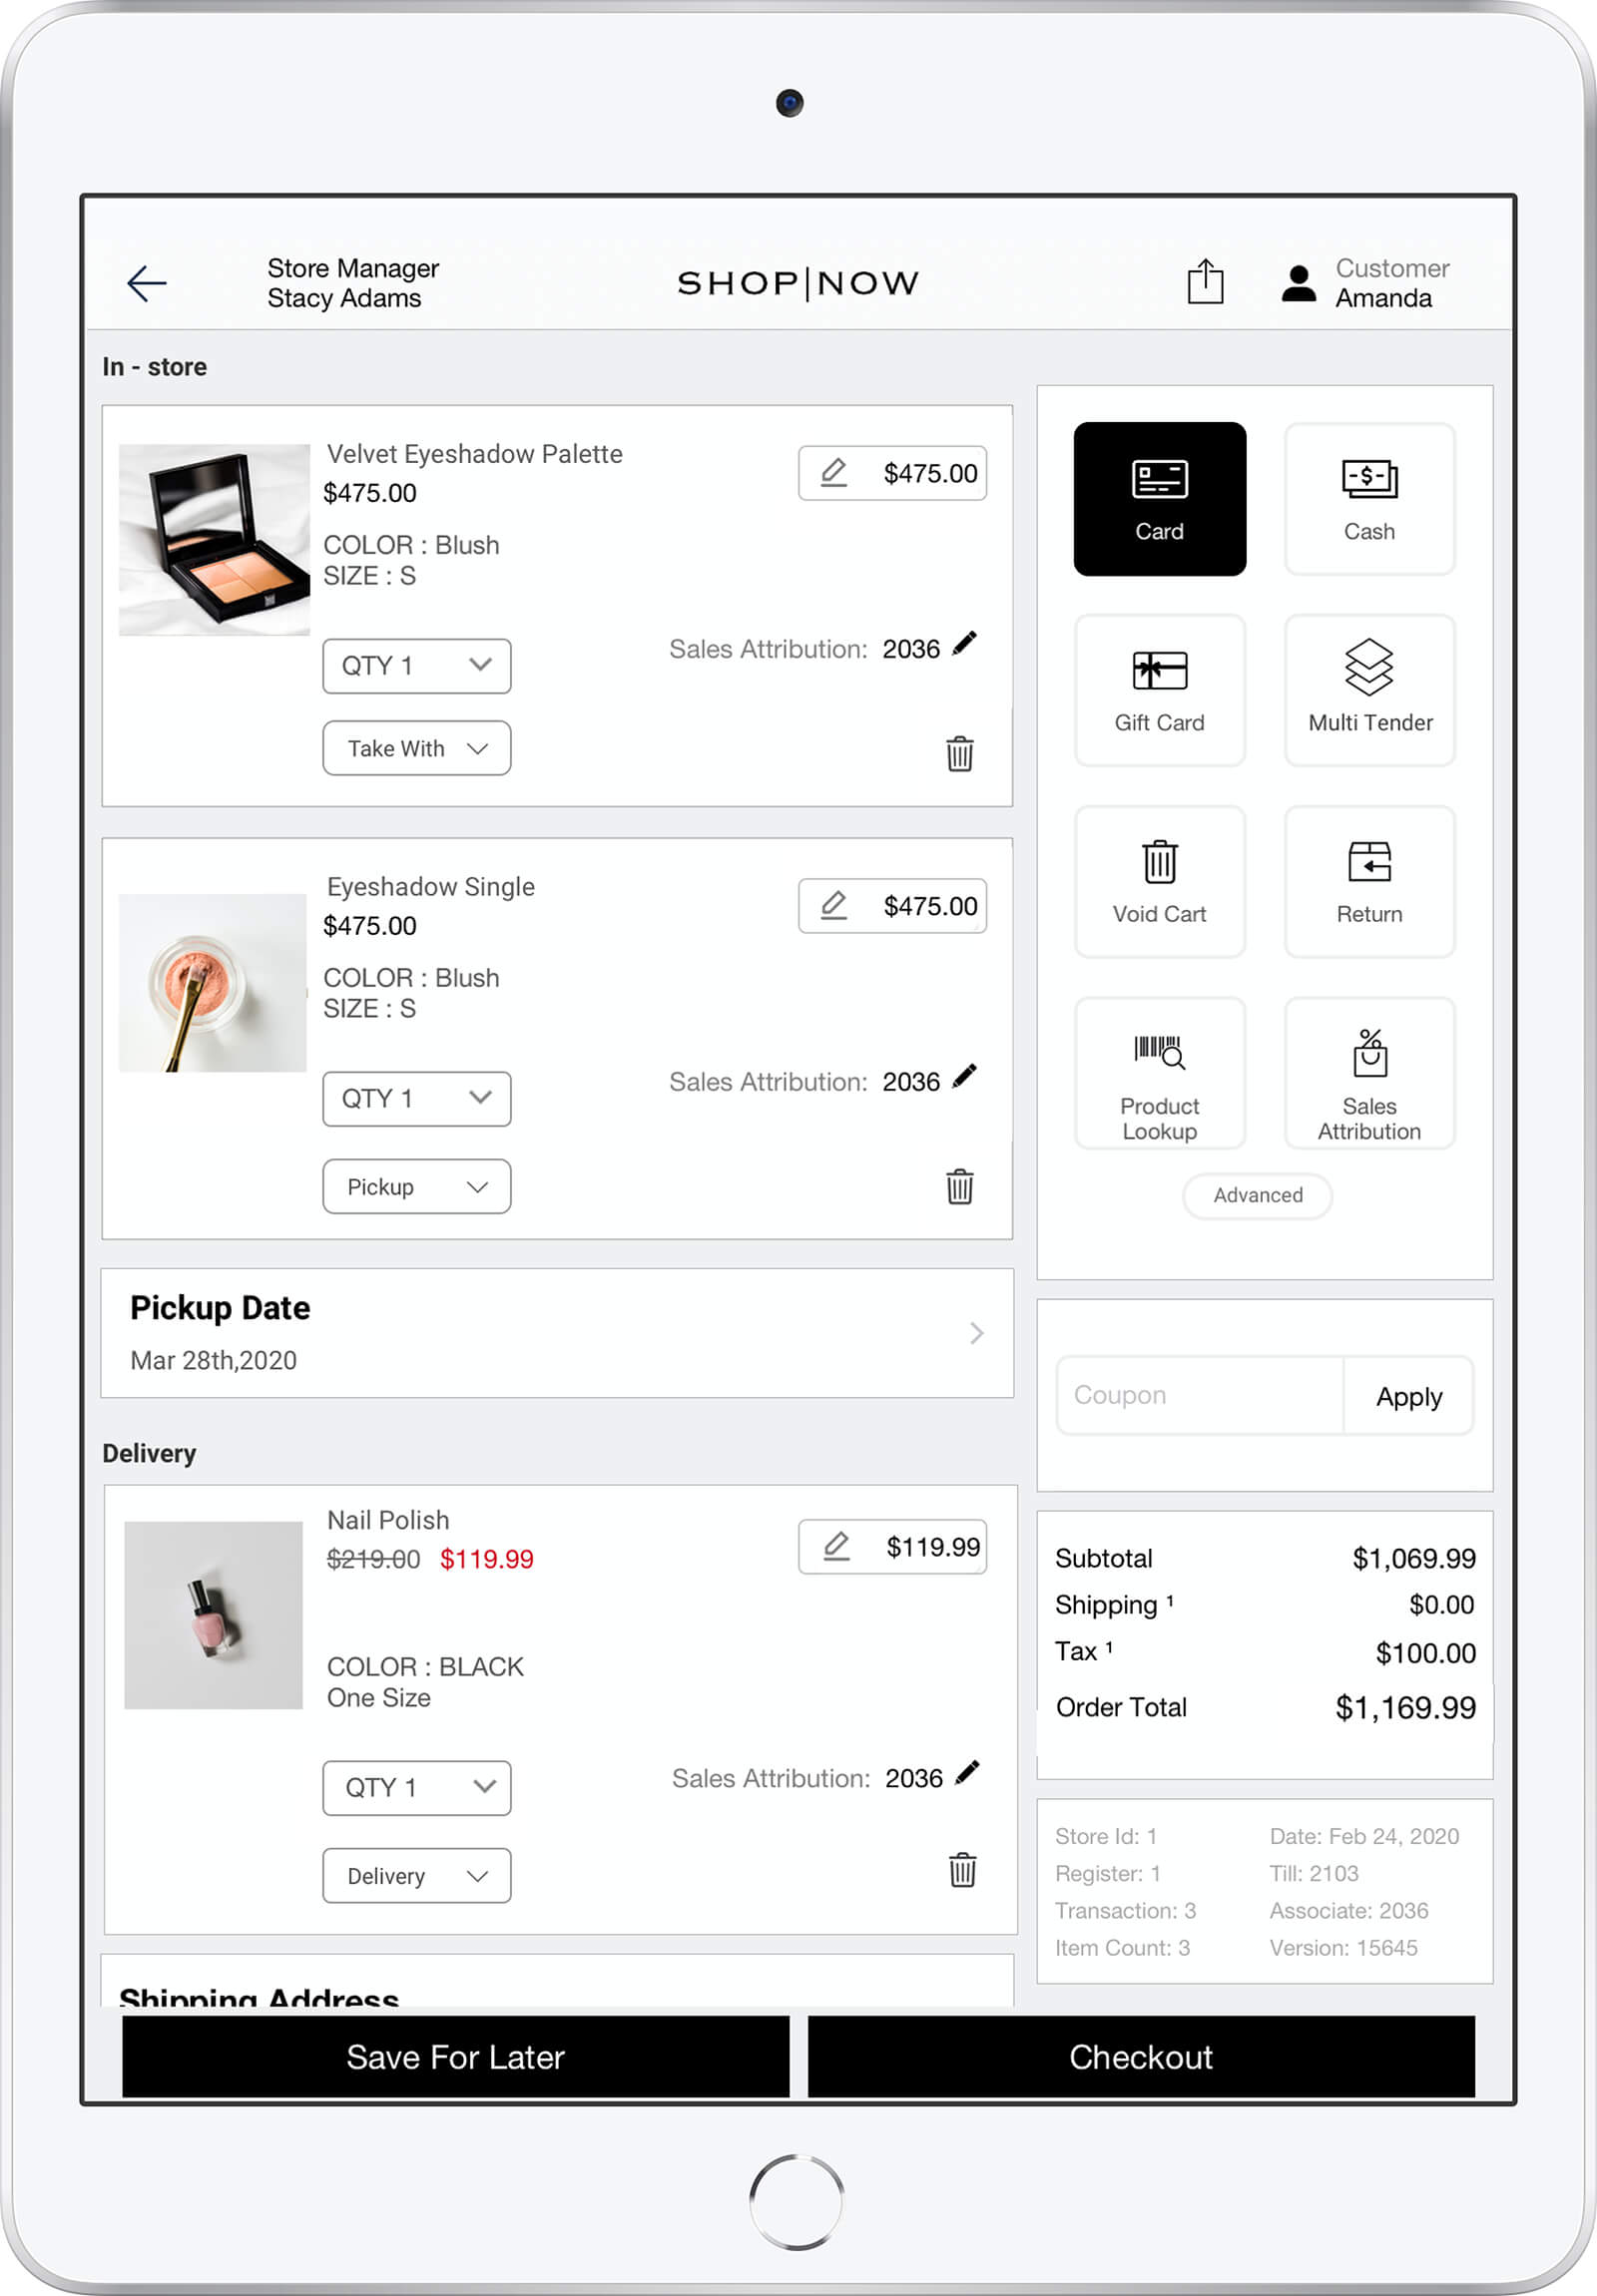 POS - Point of sale software for Brands and Retailer by PredictSpring